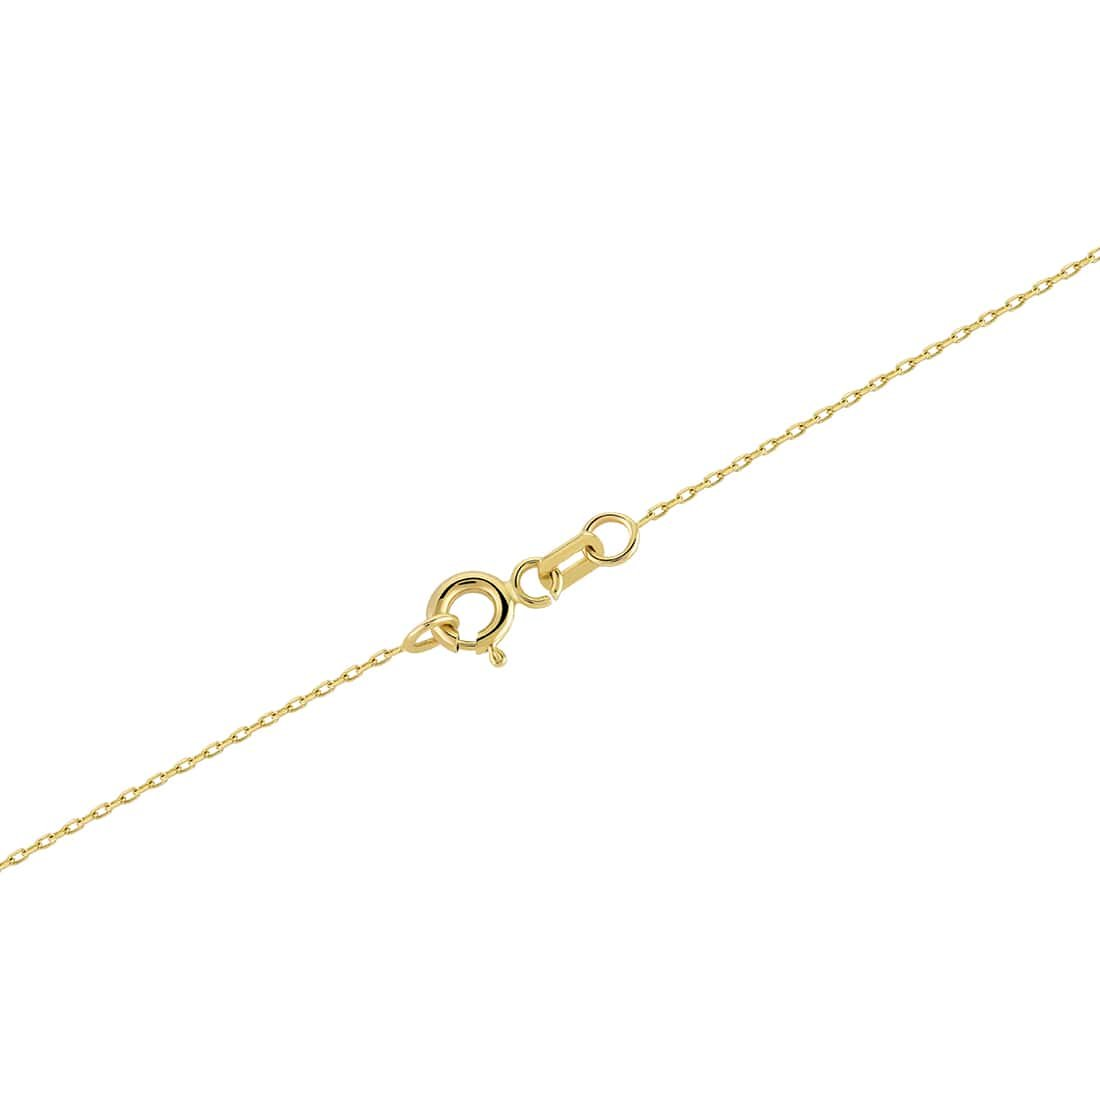 Gelin 14k Solid Yellow Gold Swan Pendant with Cubic Zirconia Chain Pendant Necklace for Women Mothers Day Fine Jewelry Gift 18 inc